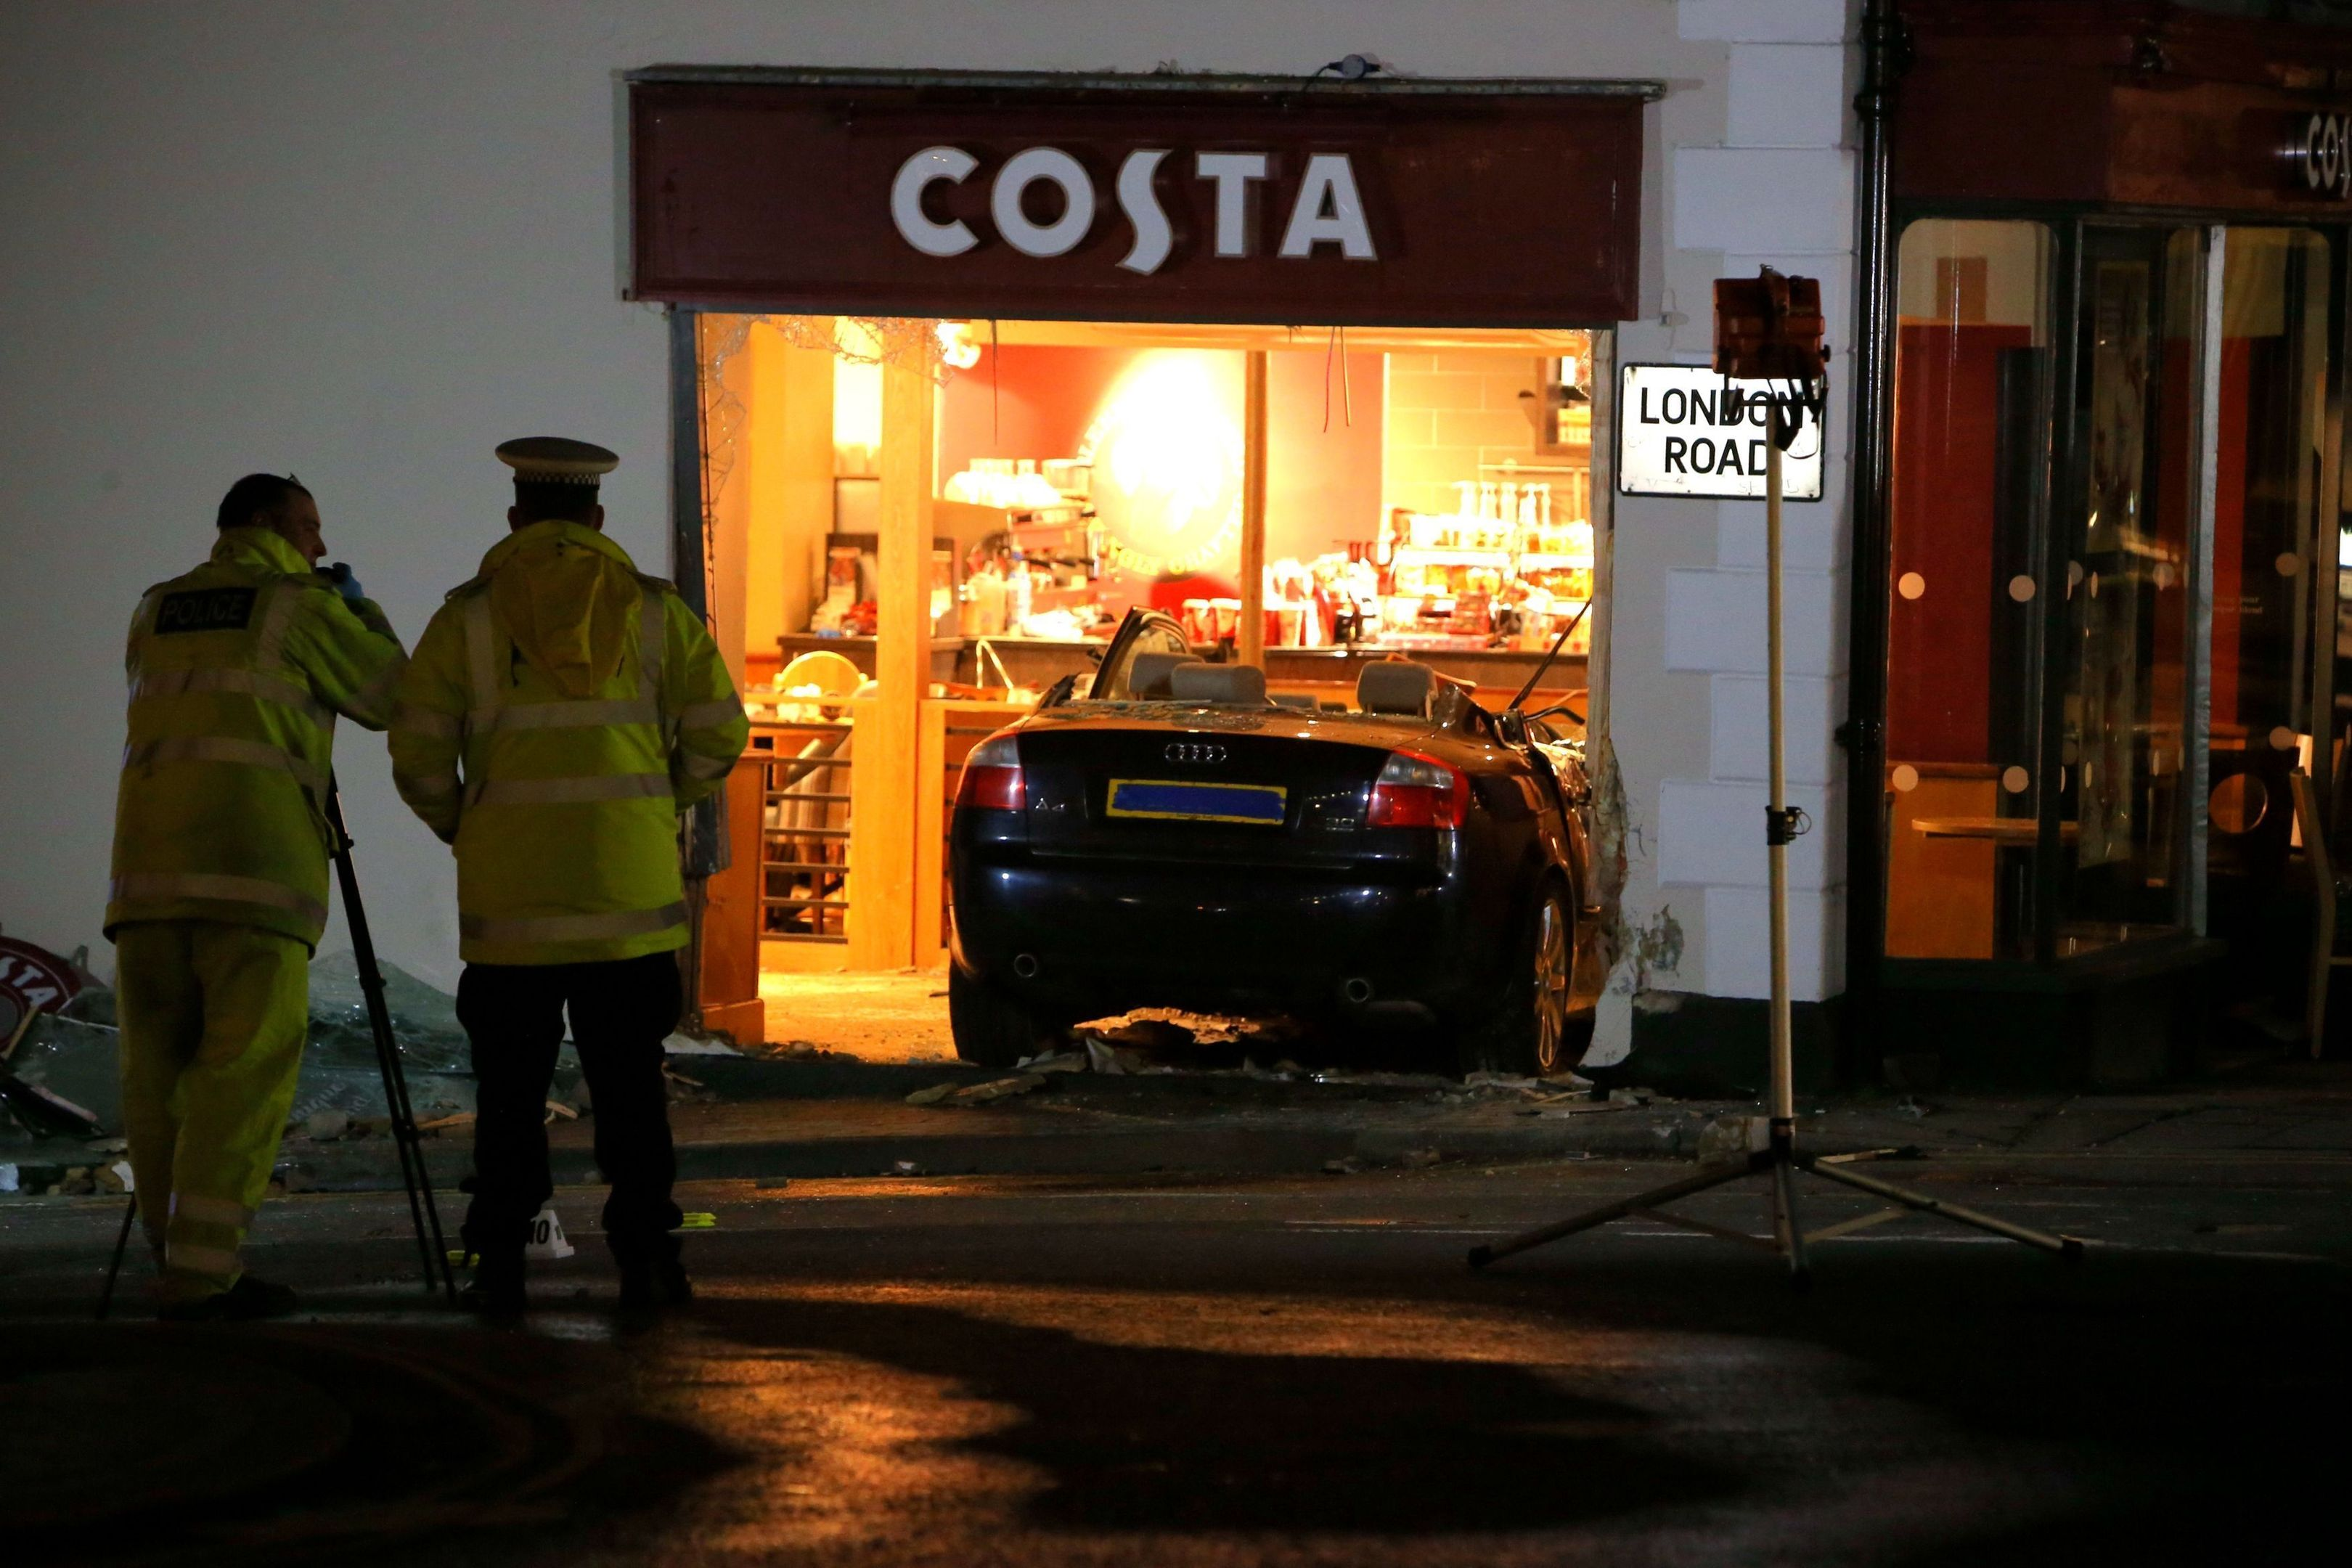 Valerie Deakin died after a car crashed into a Costa coffee shop.